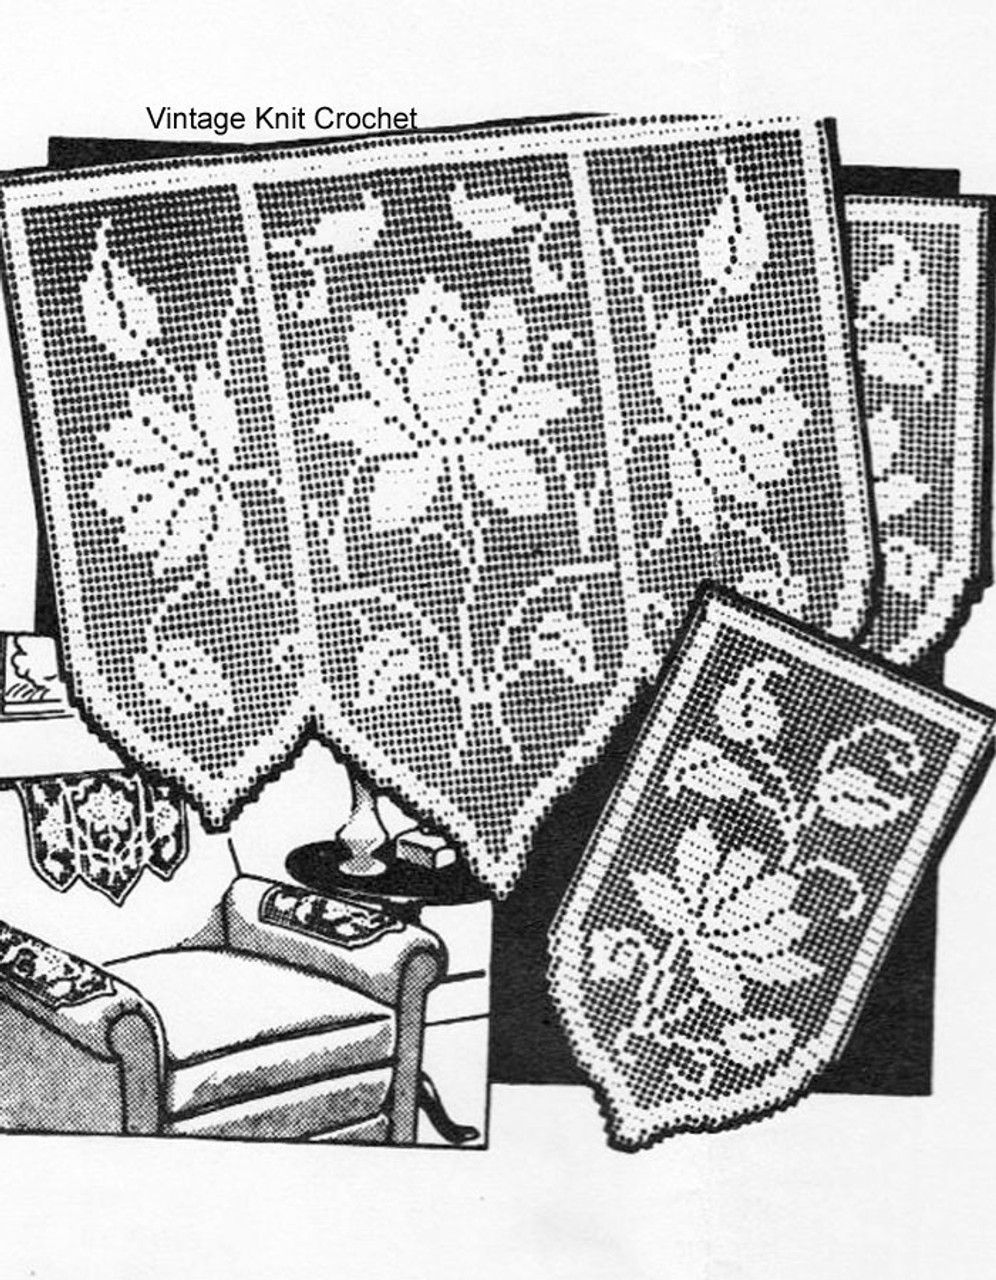 Vintage Filet Crochet Water Lily Pattern, Mail Order R-2802